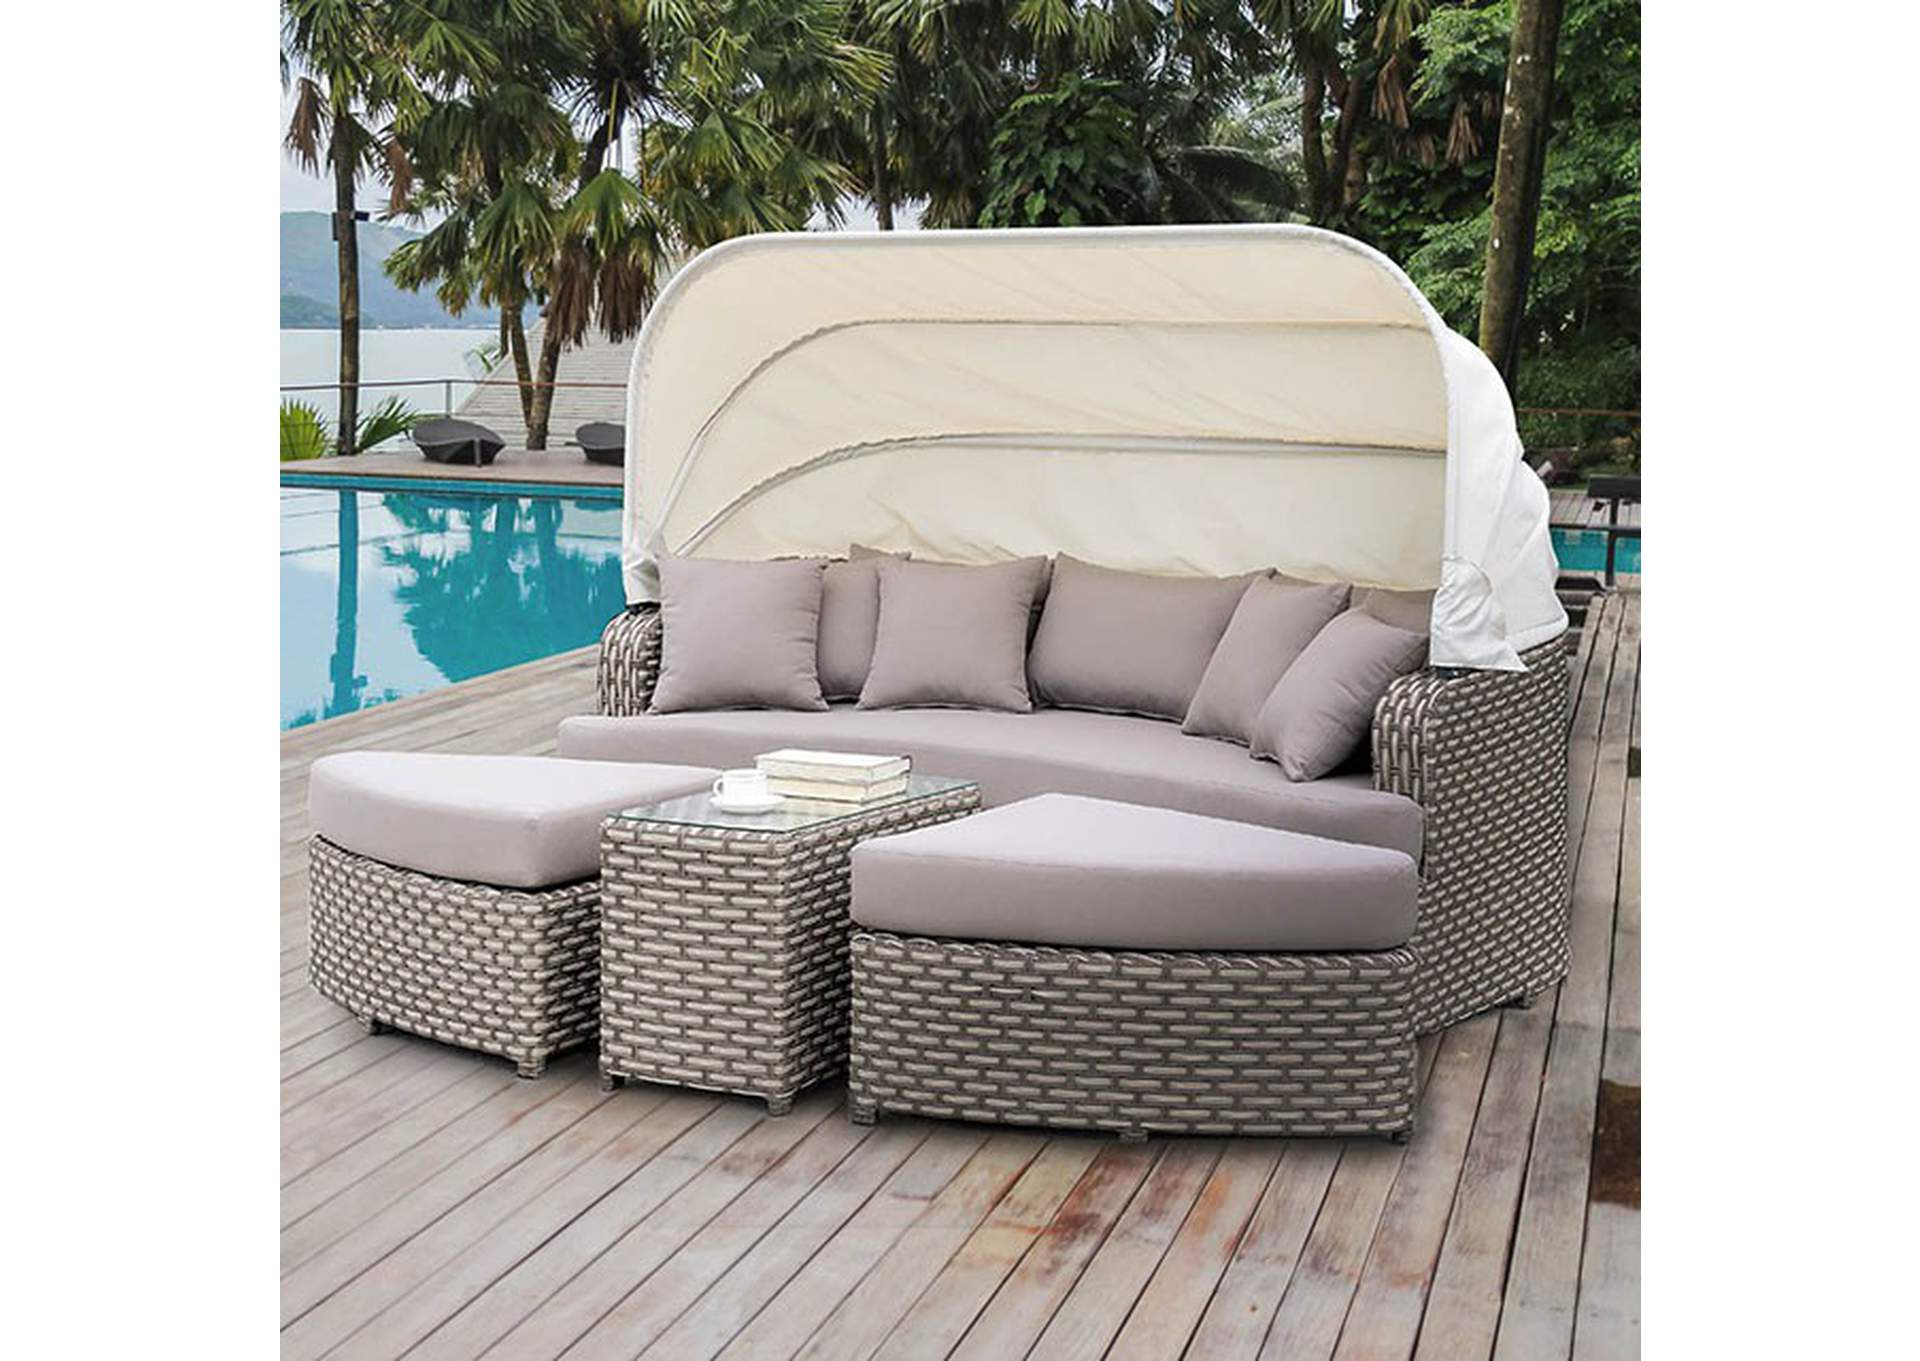 Riya 4 Piece Patio Daybed,Furniture of America